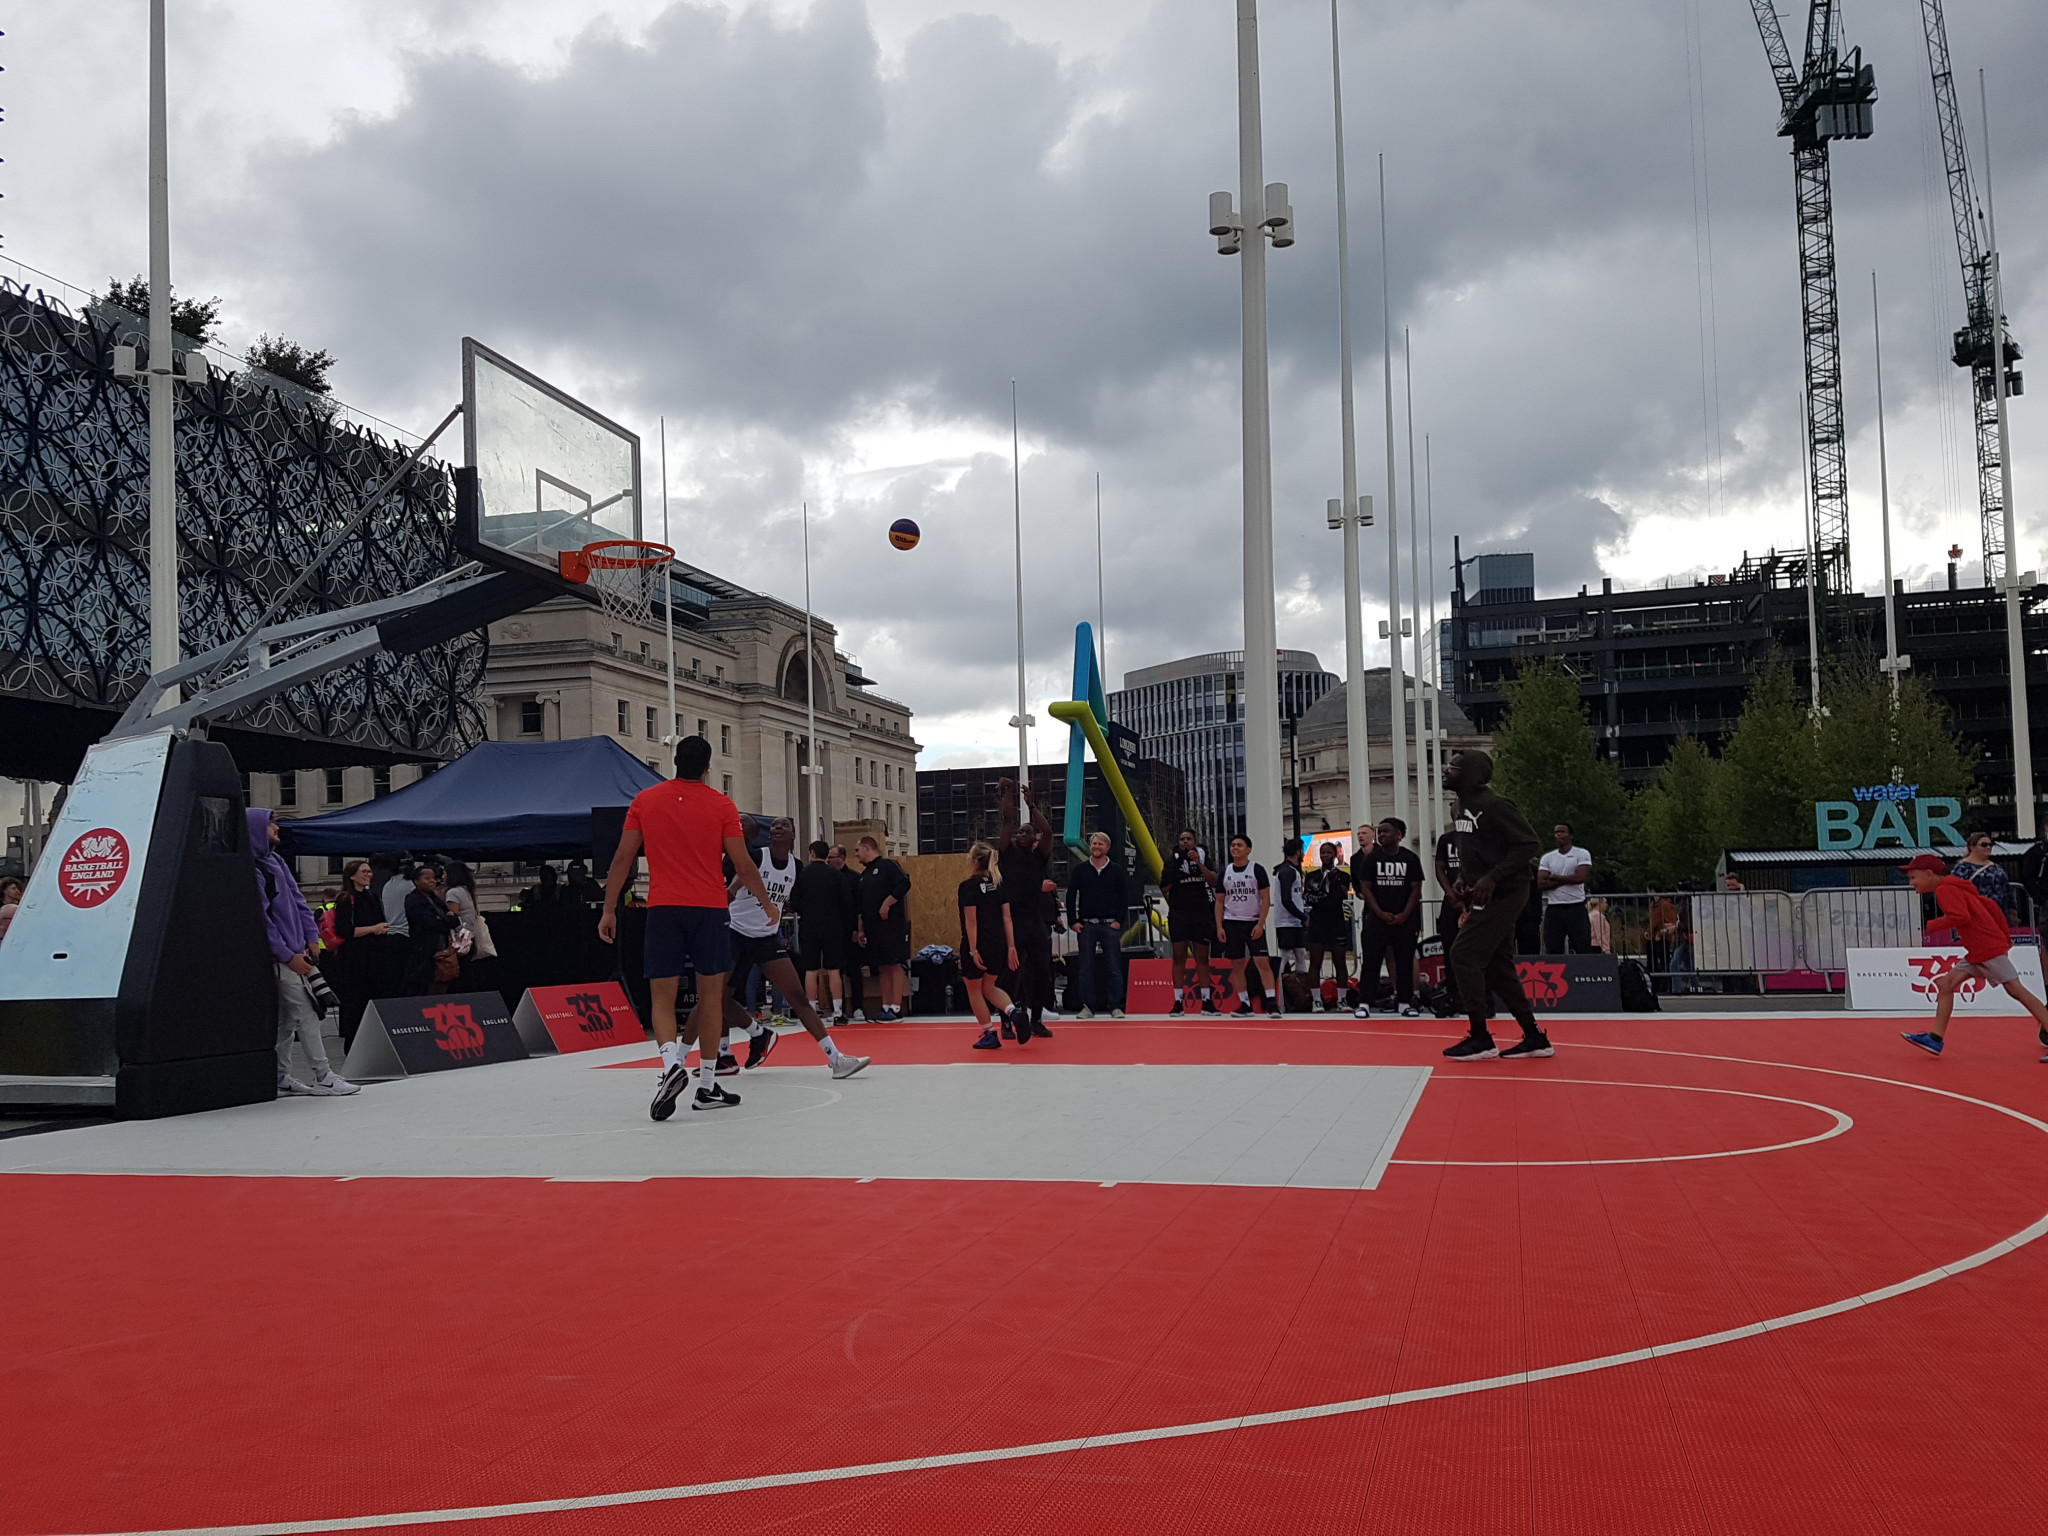 3x3 basketball was one of the sports the public could try out in advance of its Commonwealth Games debut ©ITG